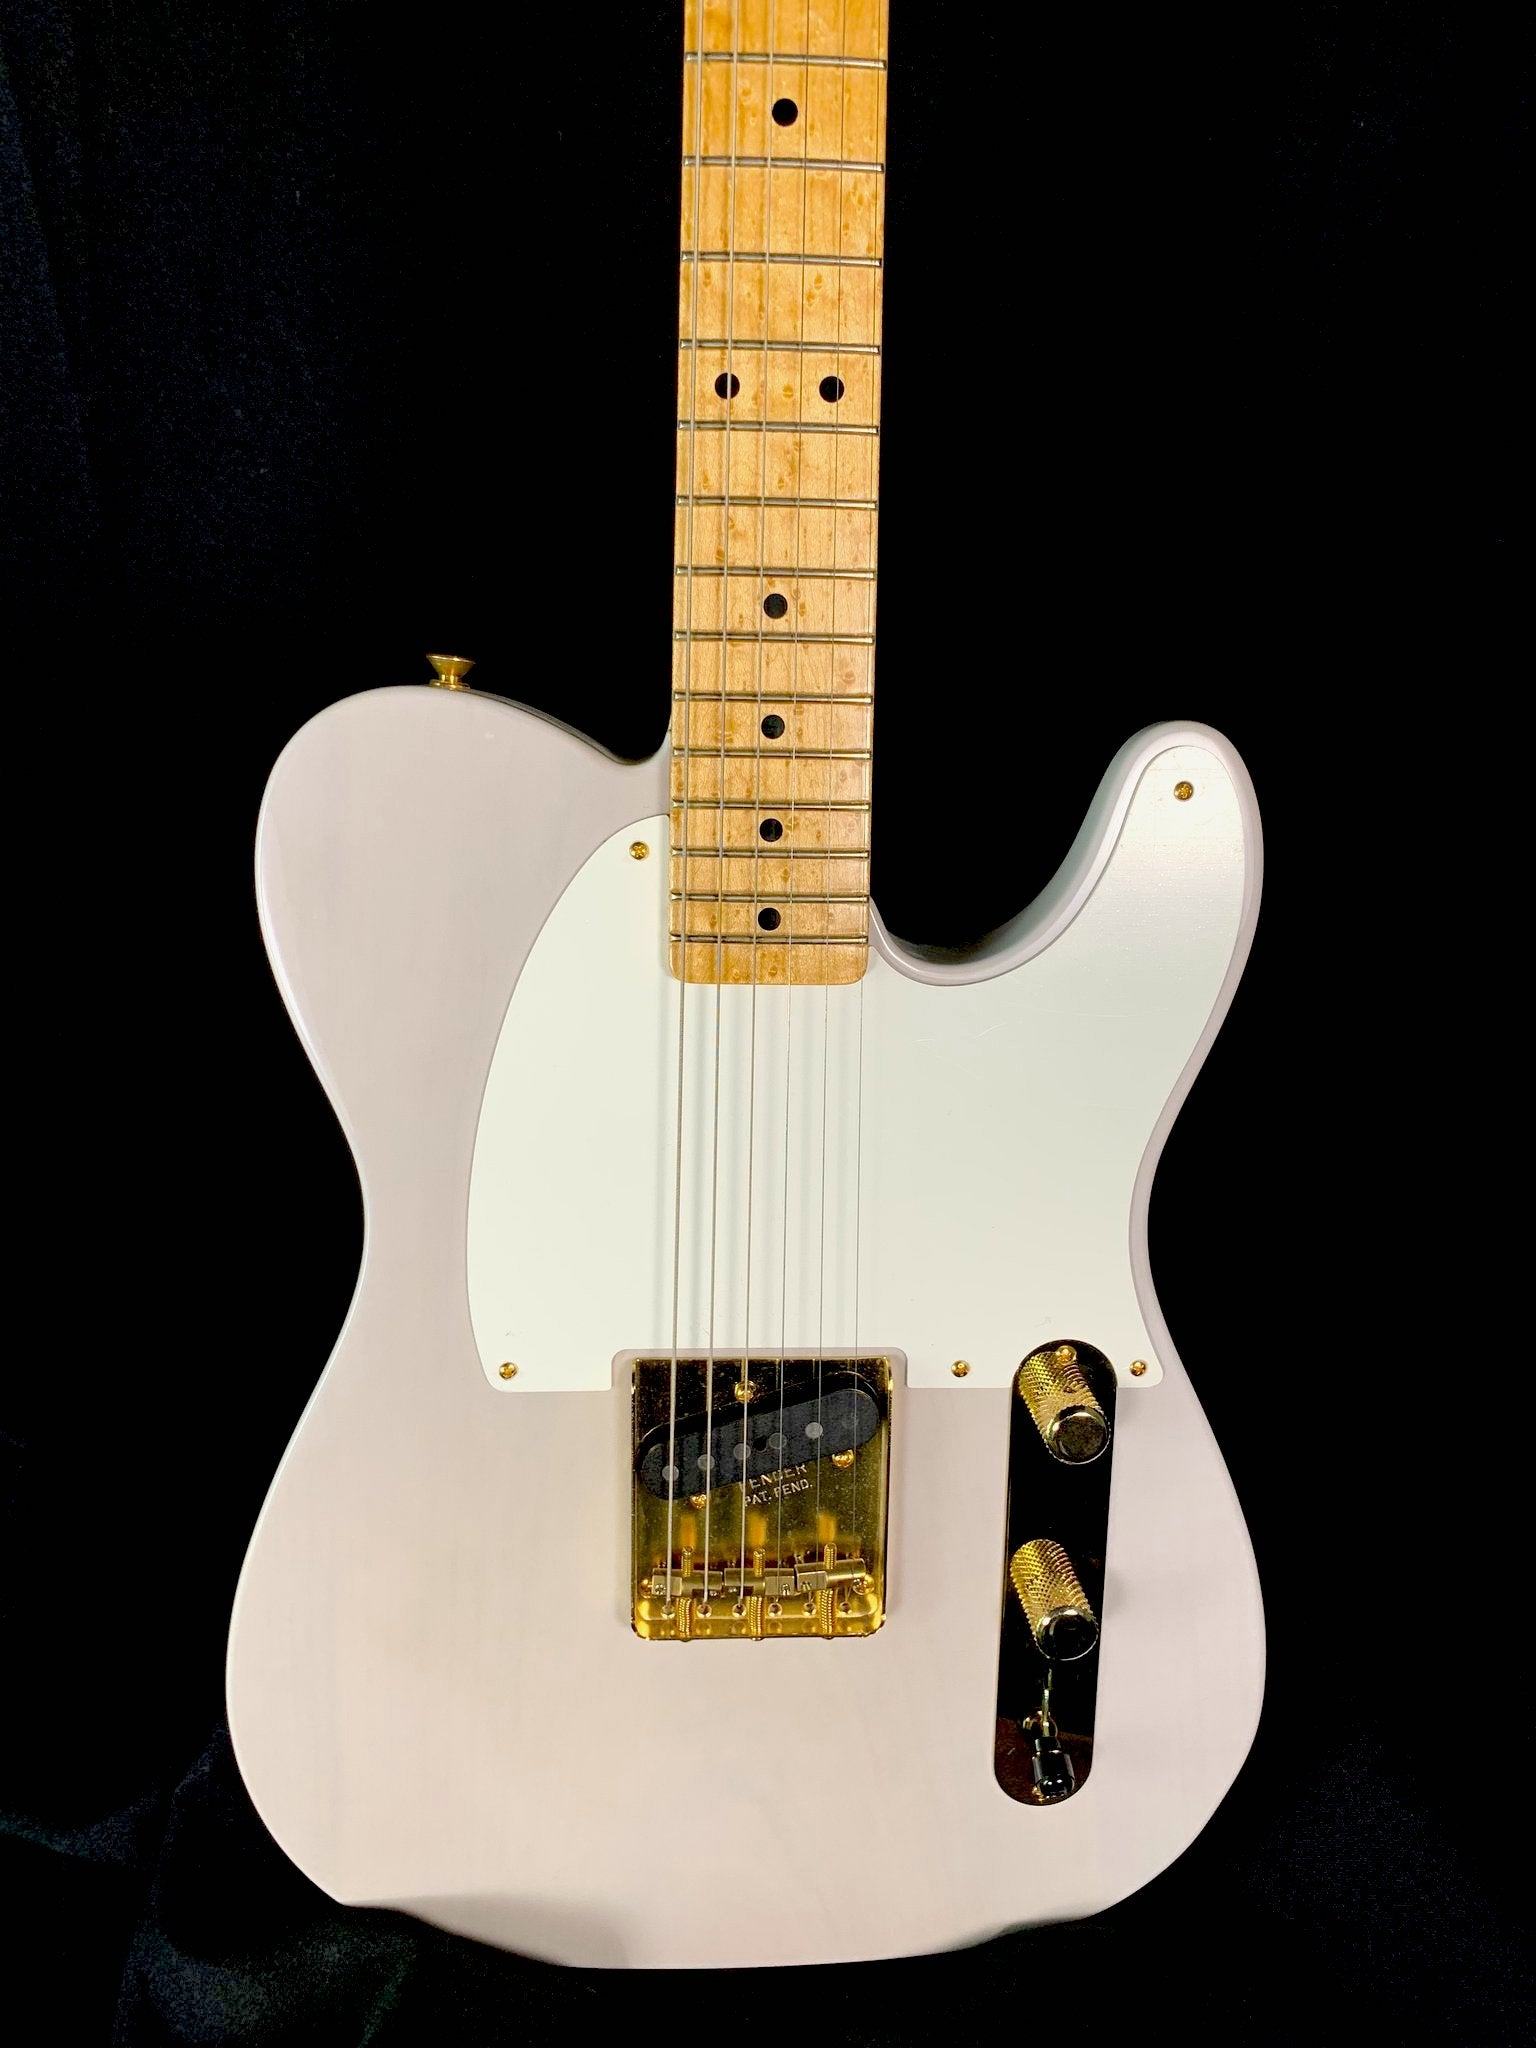 Fender Custom Shop 30th Anniversary Limited Edition - Michael Stevens Esquire